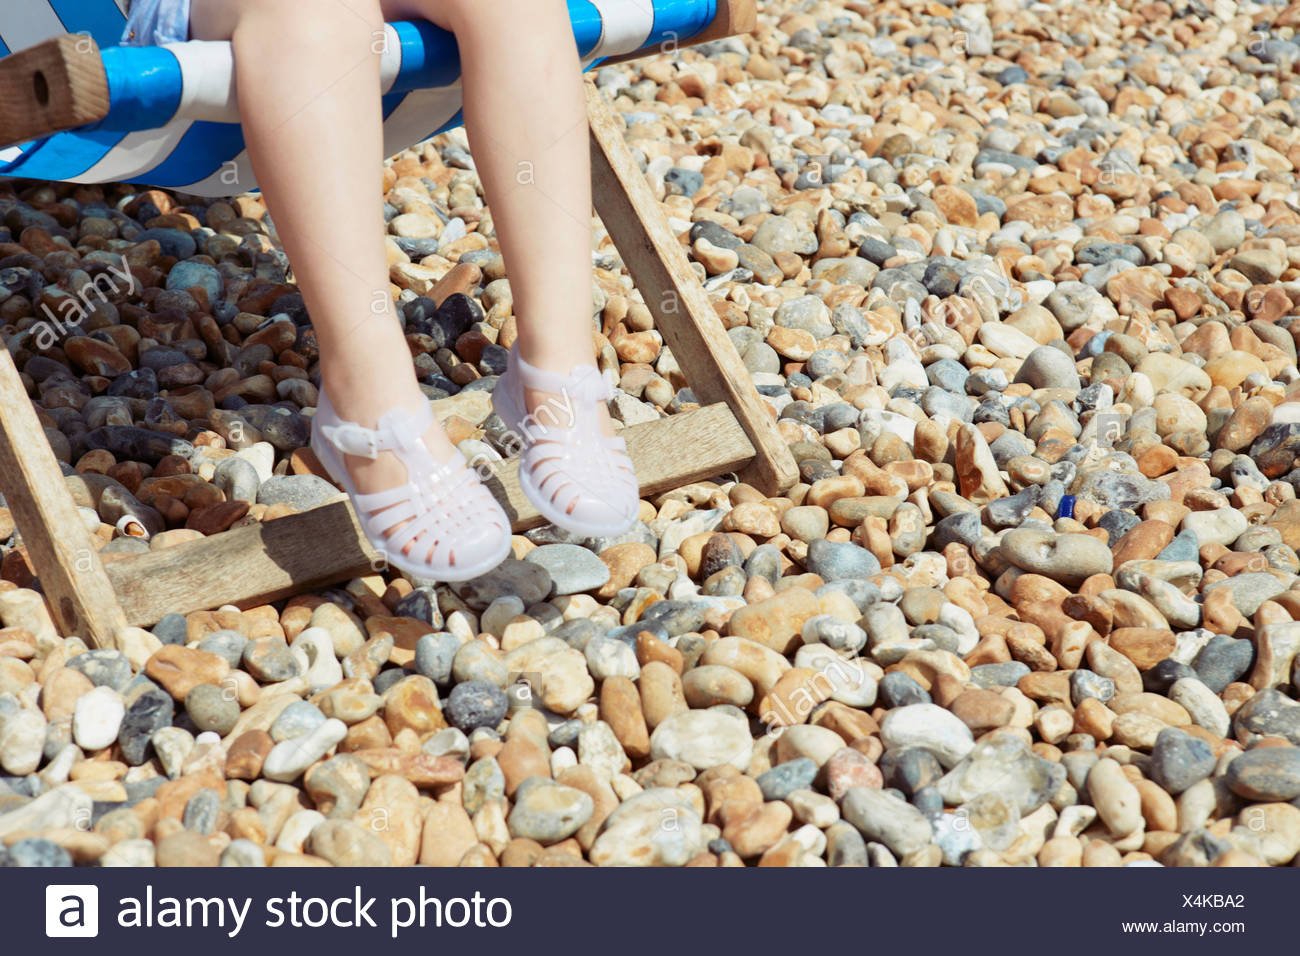 Child with plastic sandals on beach deck chair Stock Photo